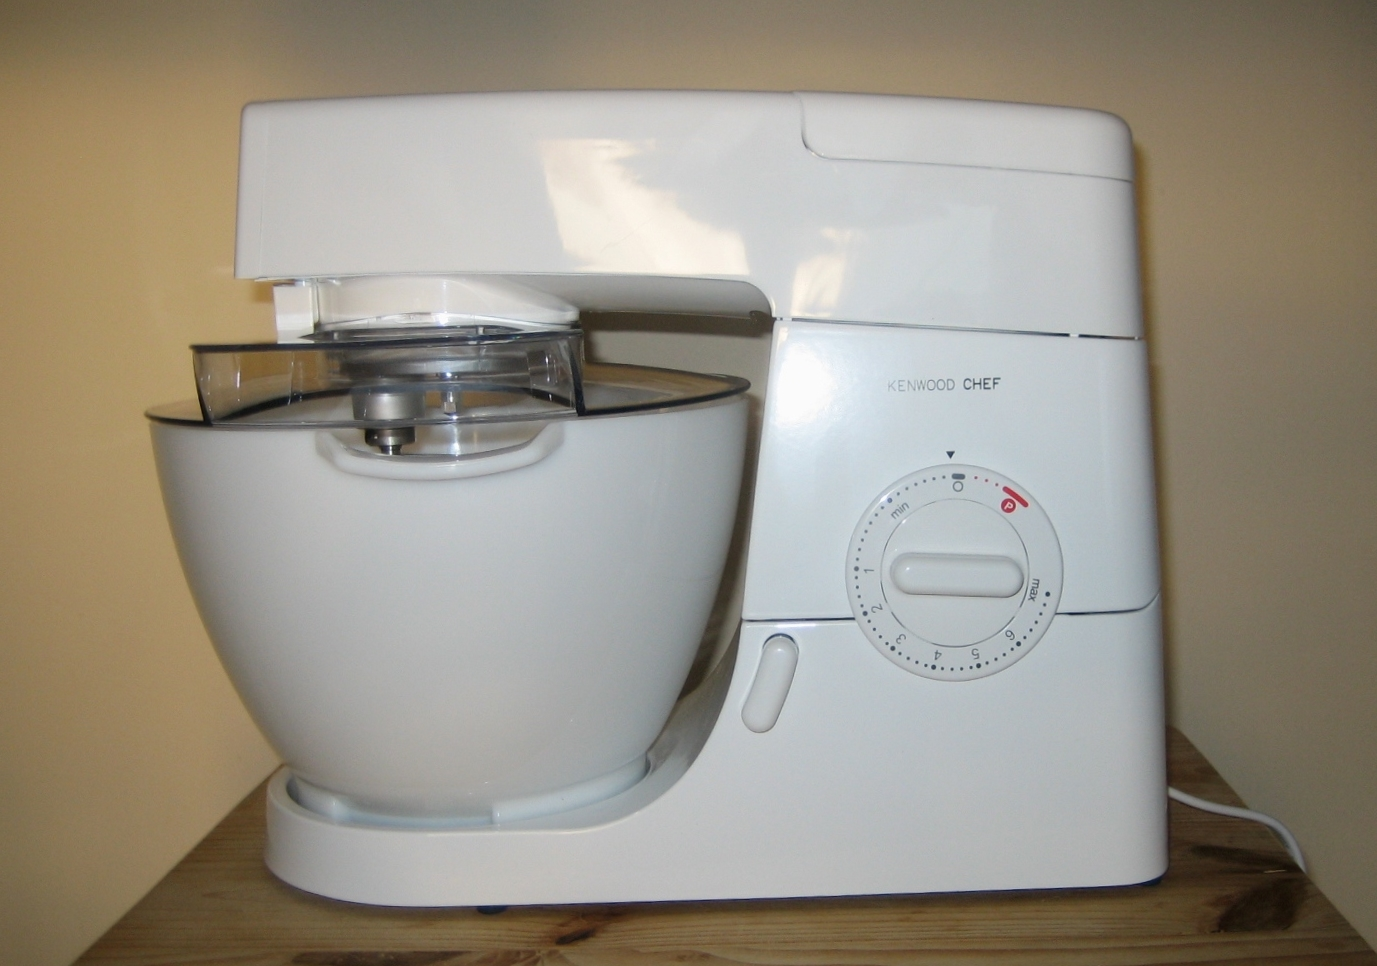 Kenwood chef review forumfinder Gallery